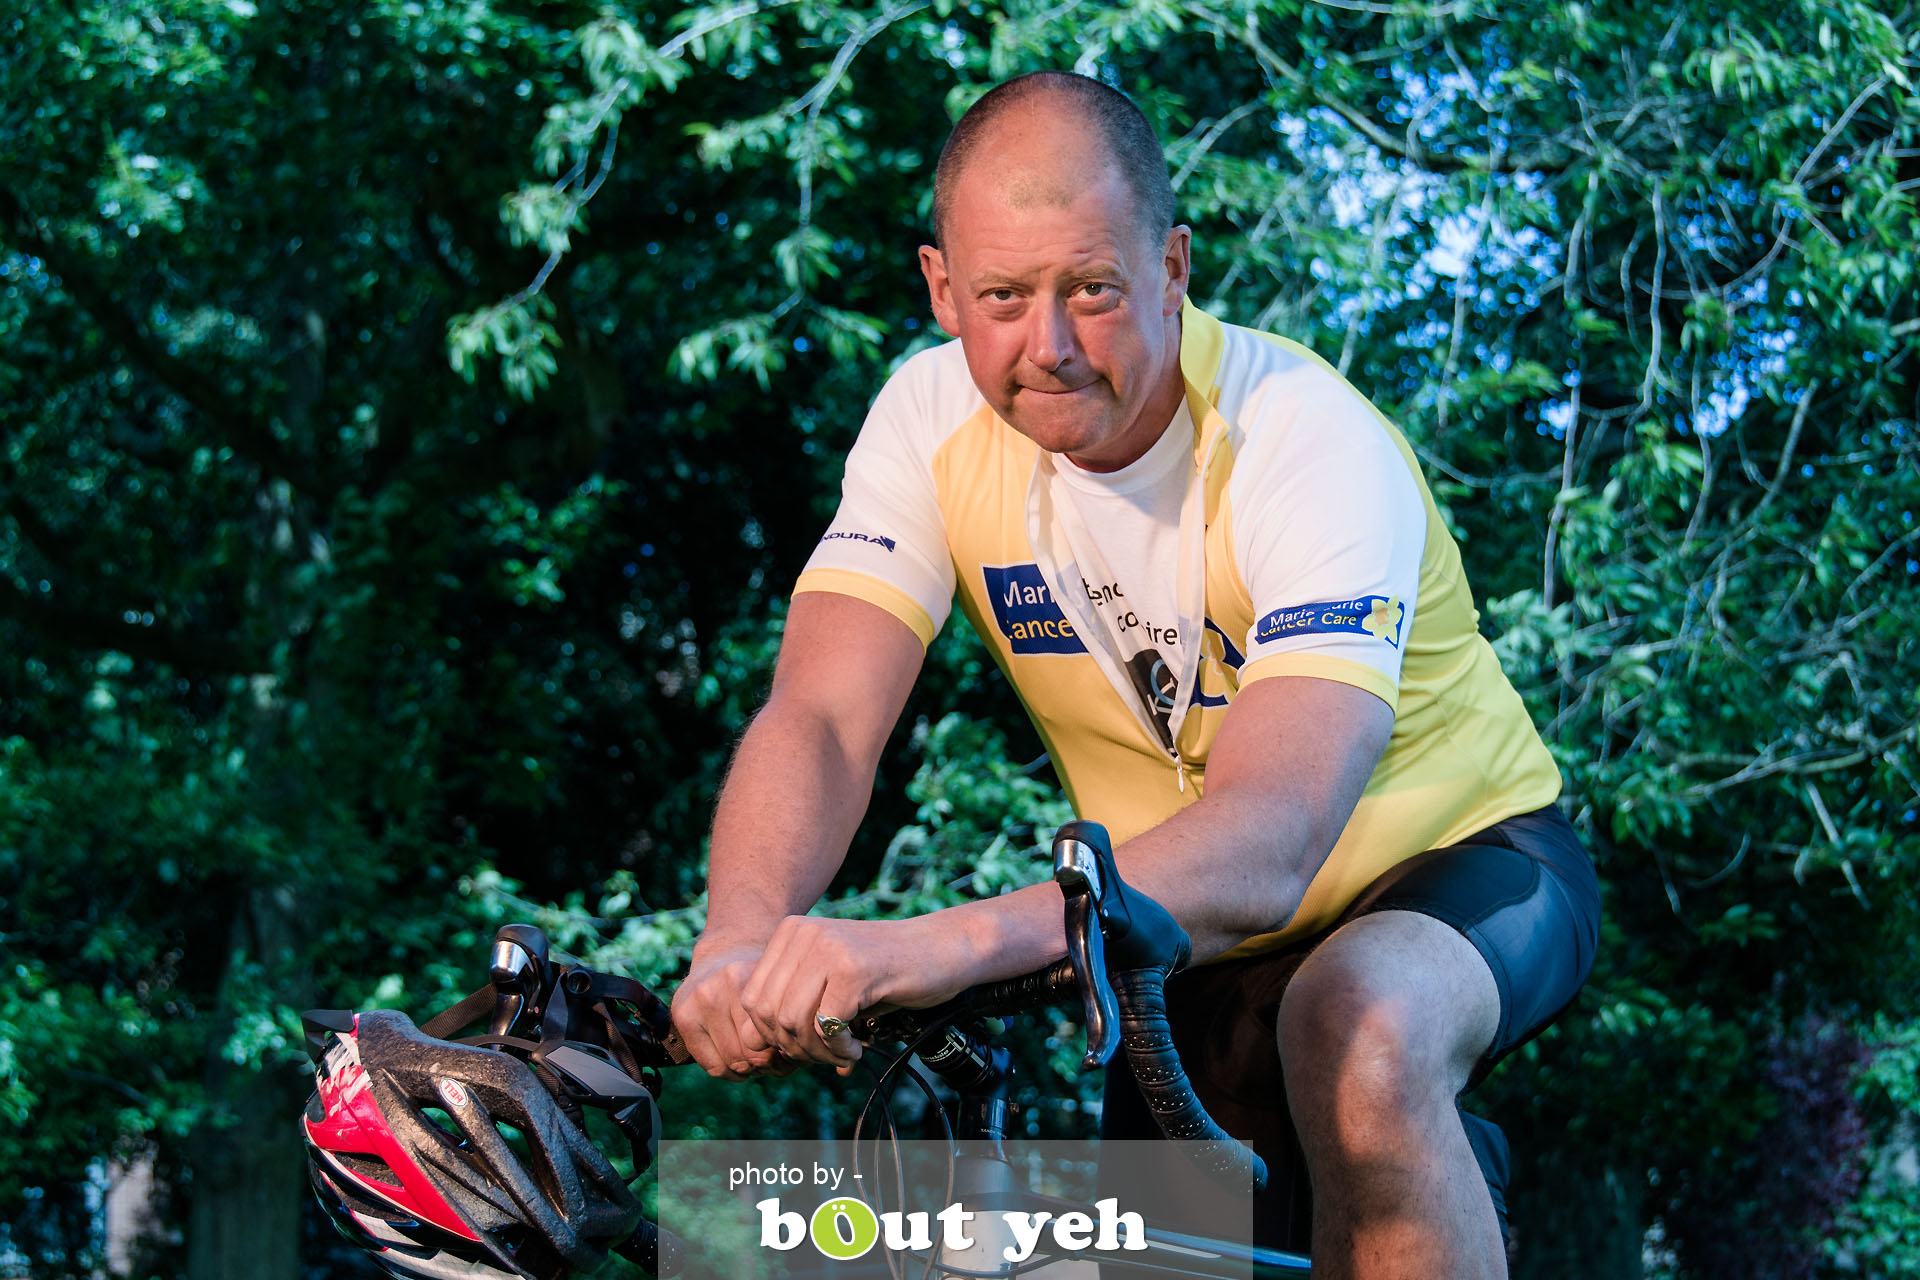 Hugo, of Bed and Bike Cycling Tours, at Botanic Gardens, Belfast, Northern Ireland - photo 7125.